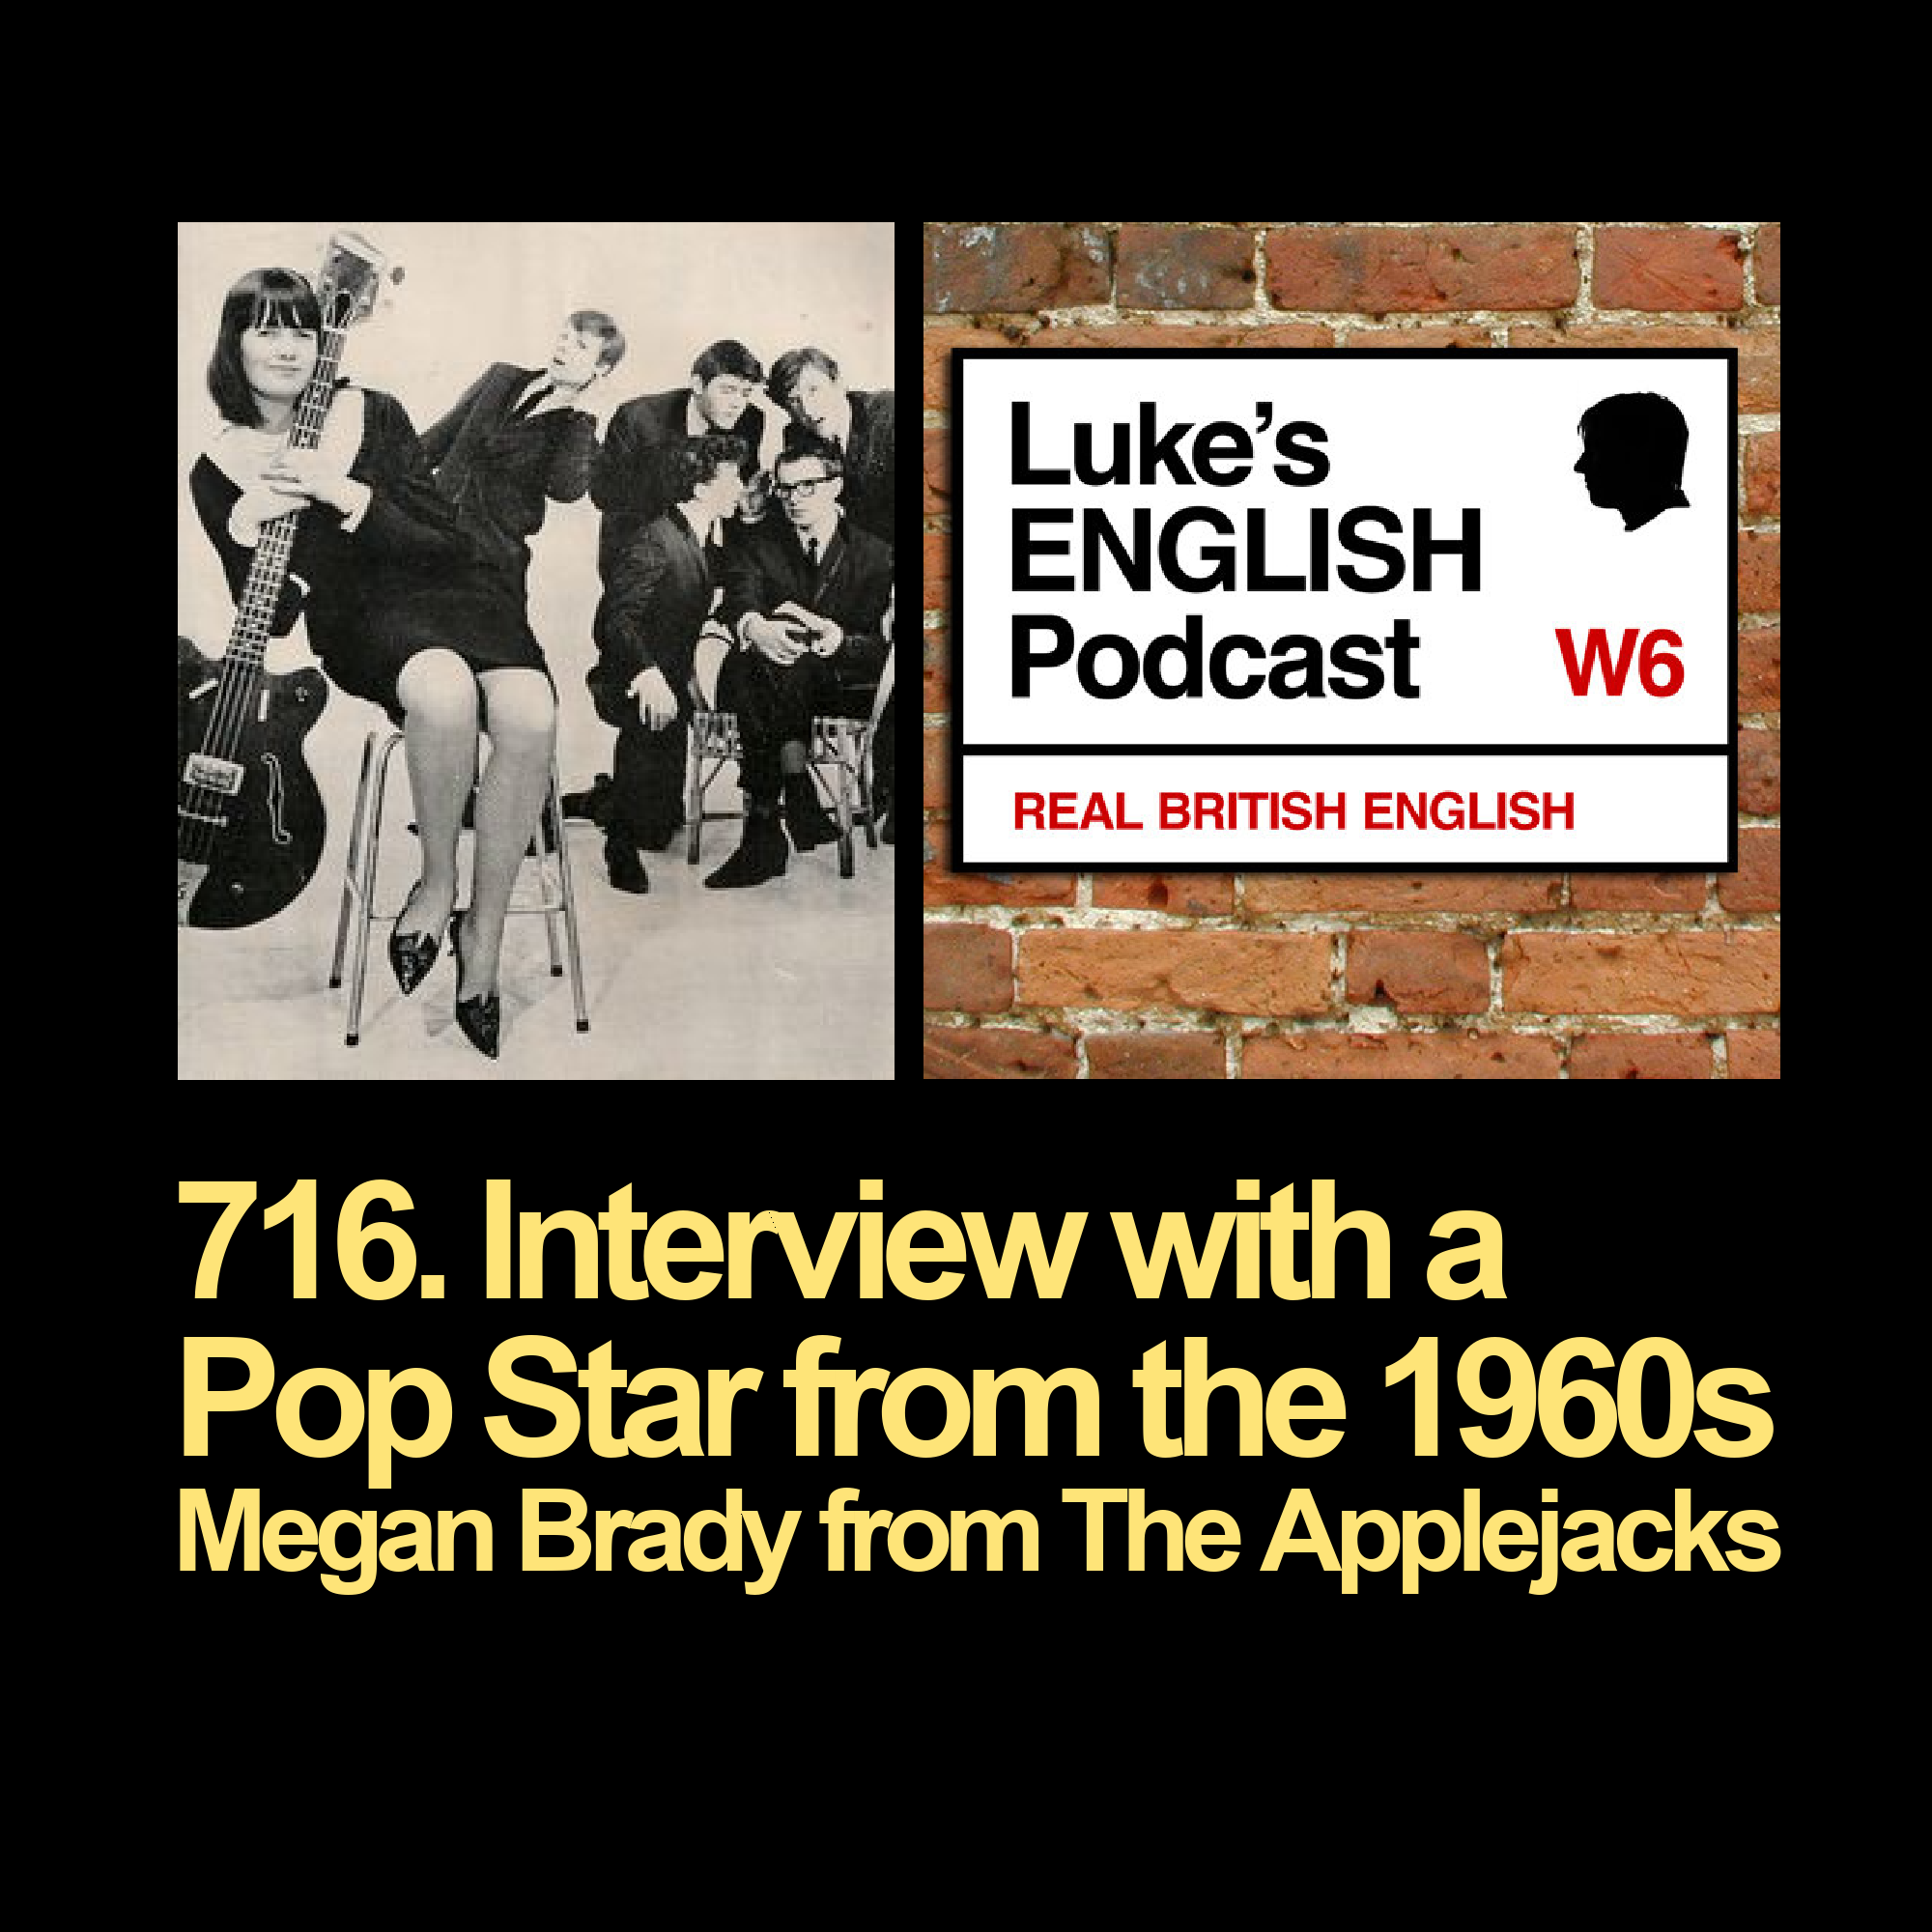 716. Interview with a Pop Star from the 1960s - Megan Brady from The Applejacks